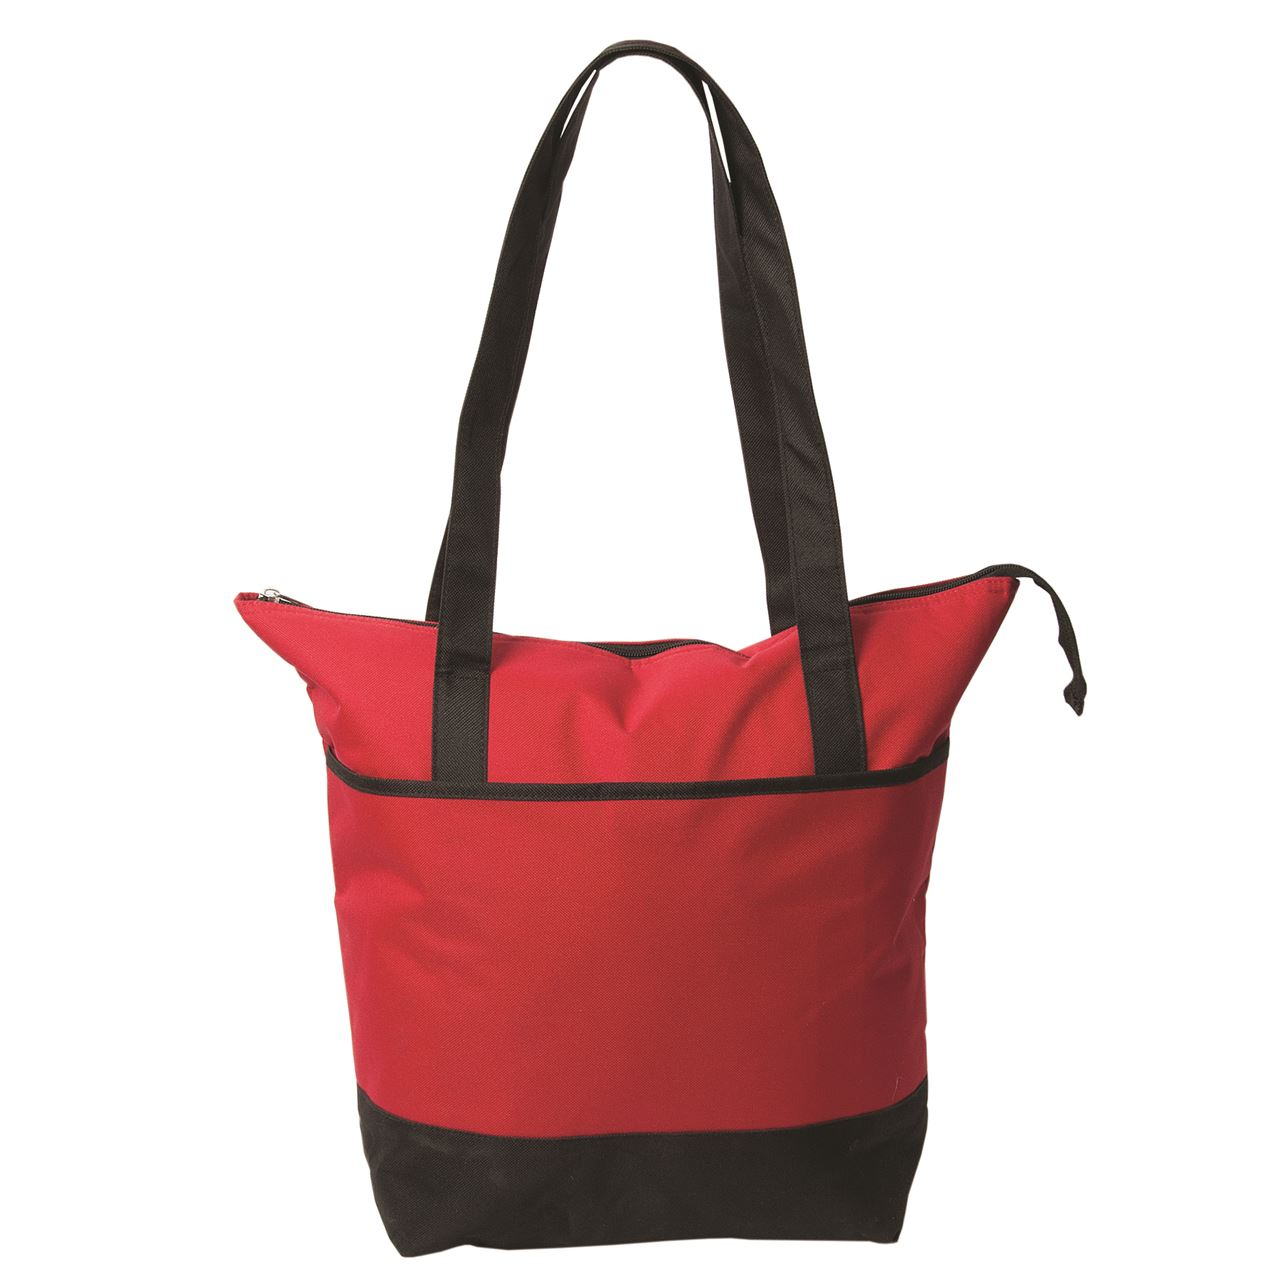 Picture of DEBCO Carry Cold Cooler Tote